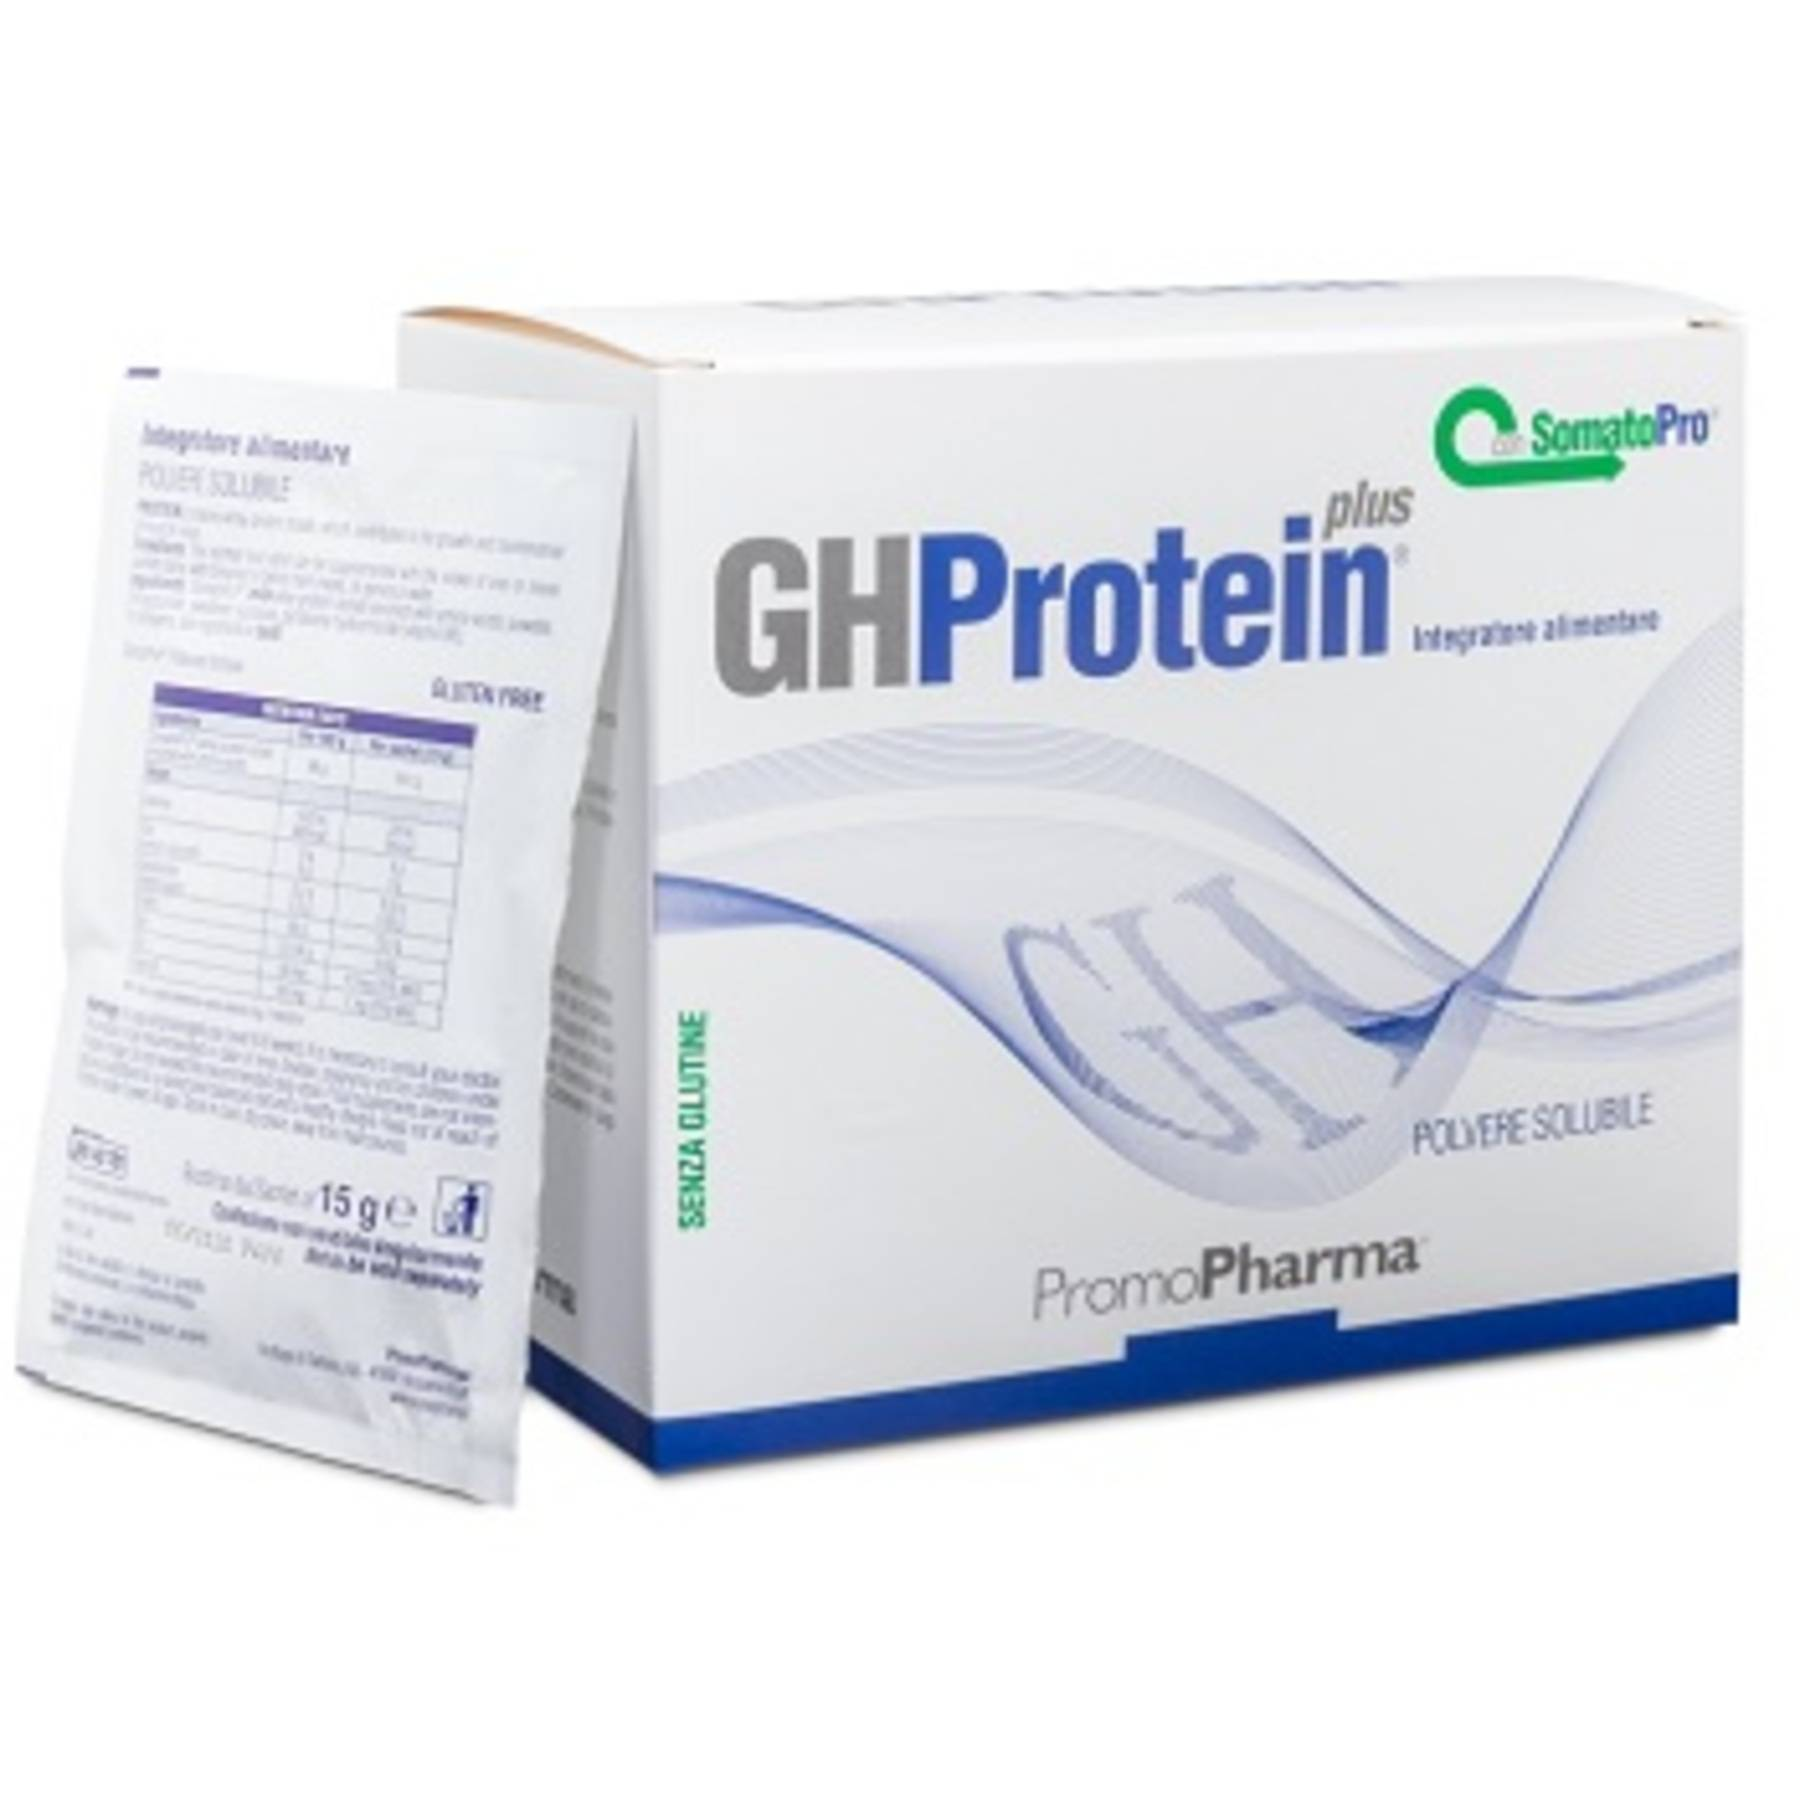 promopharma spa gh protein plus cacao 20 bustine